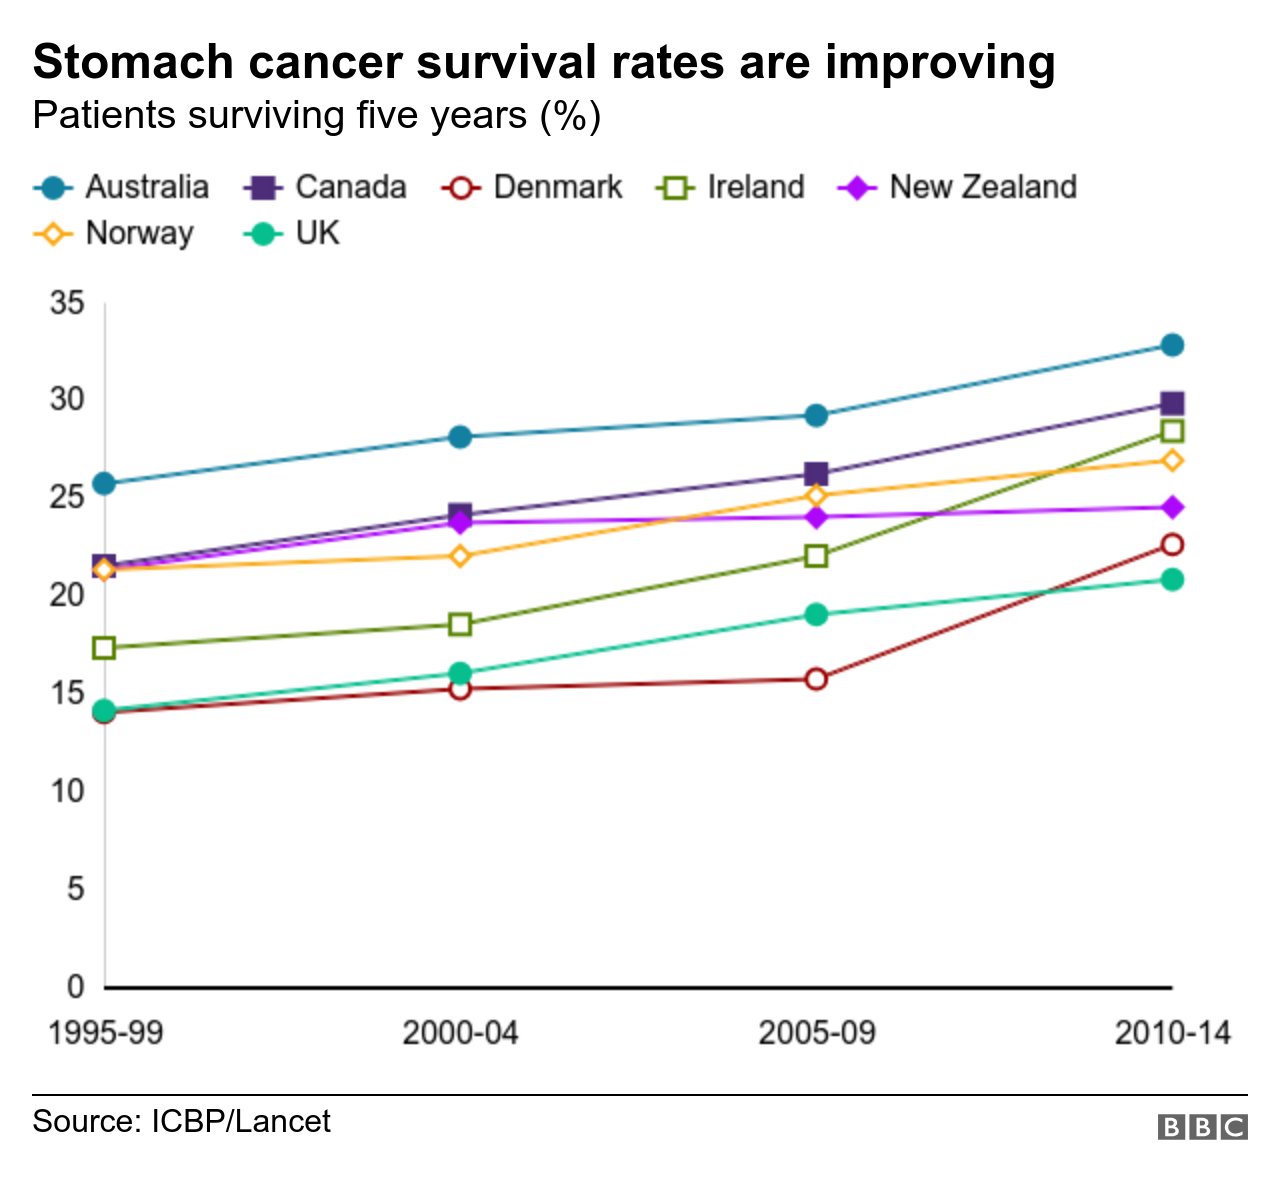 Survival rates for stomach cancer